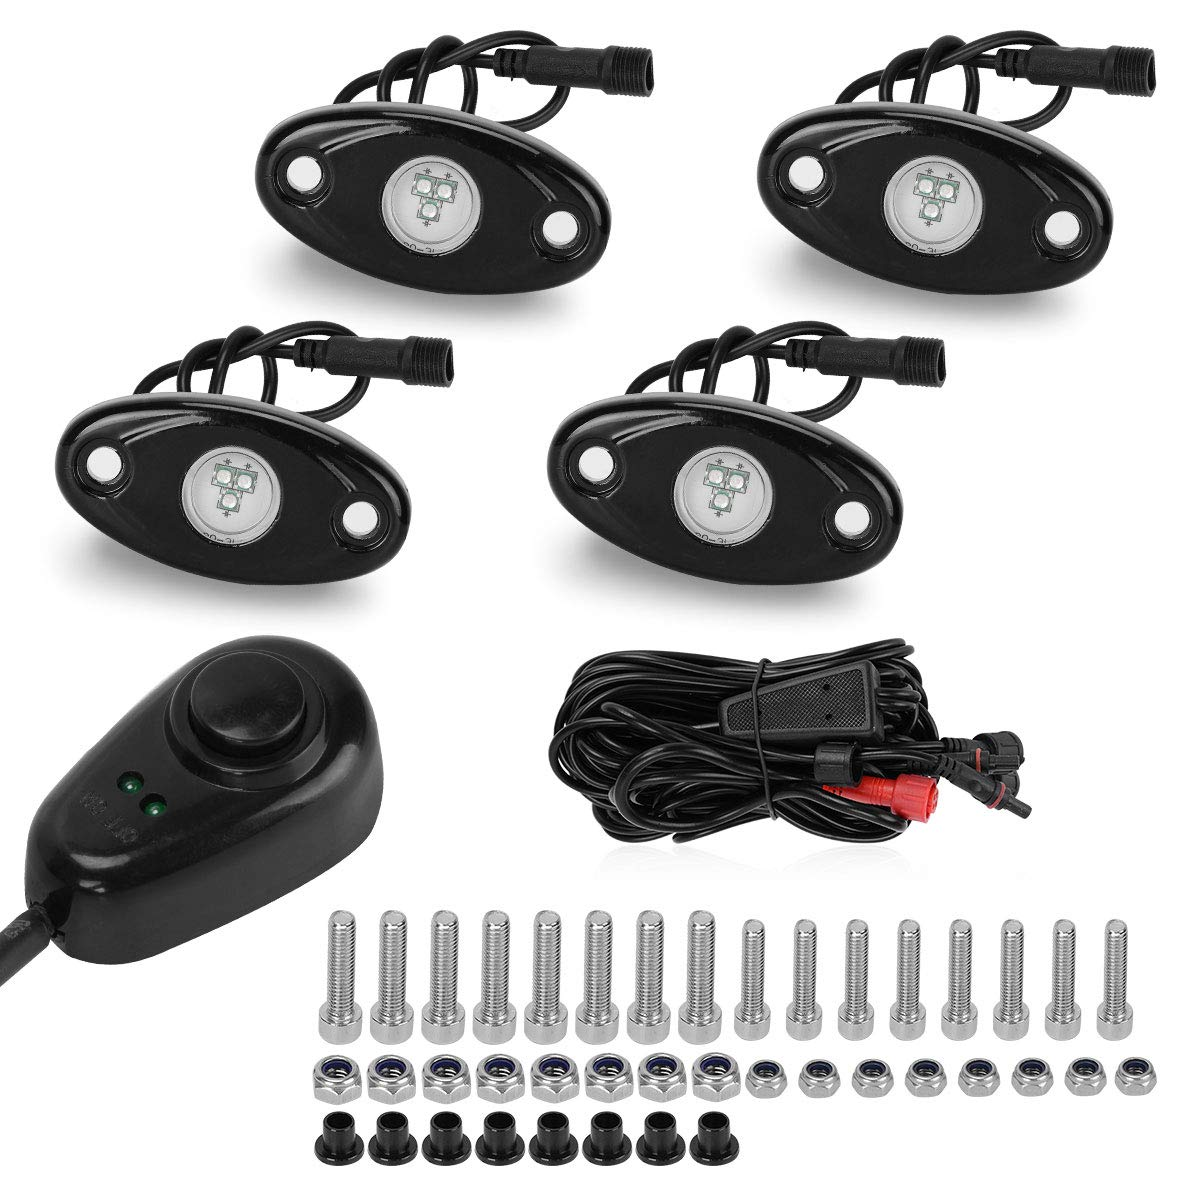 LED Rock Lights Kit for Jeep Truck Wheel Lights with Dimmer Switch, YITAMOTOR 4 Pods Single Color LED Neon Underglow Lights for Car ATV UTV Kayak Polaris RZR Offroad Boat (Green)